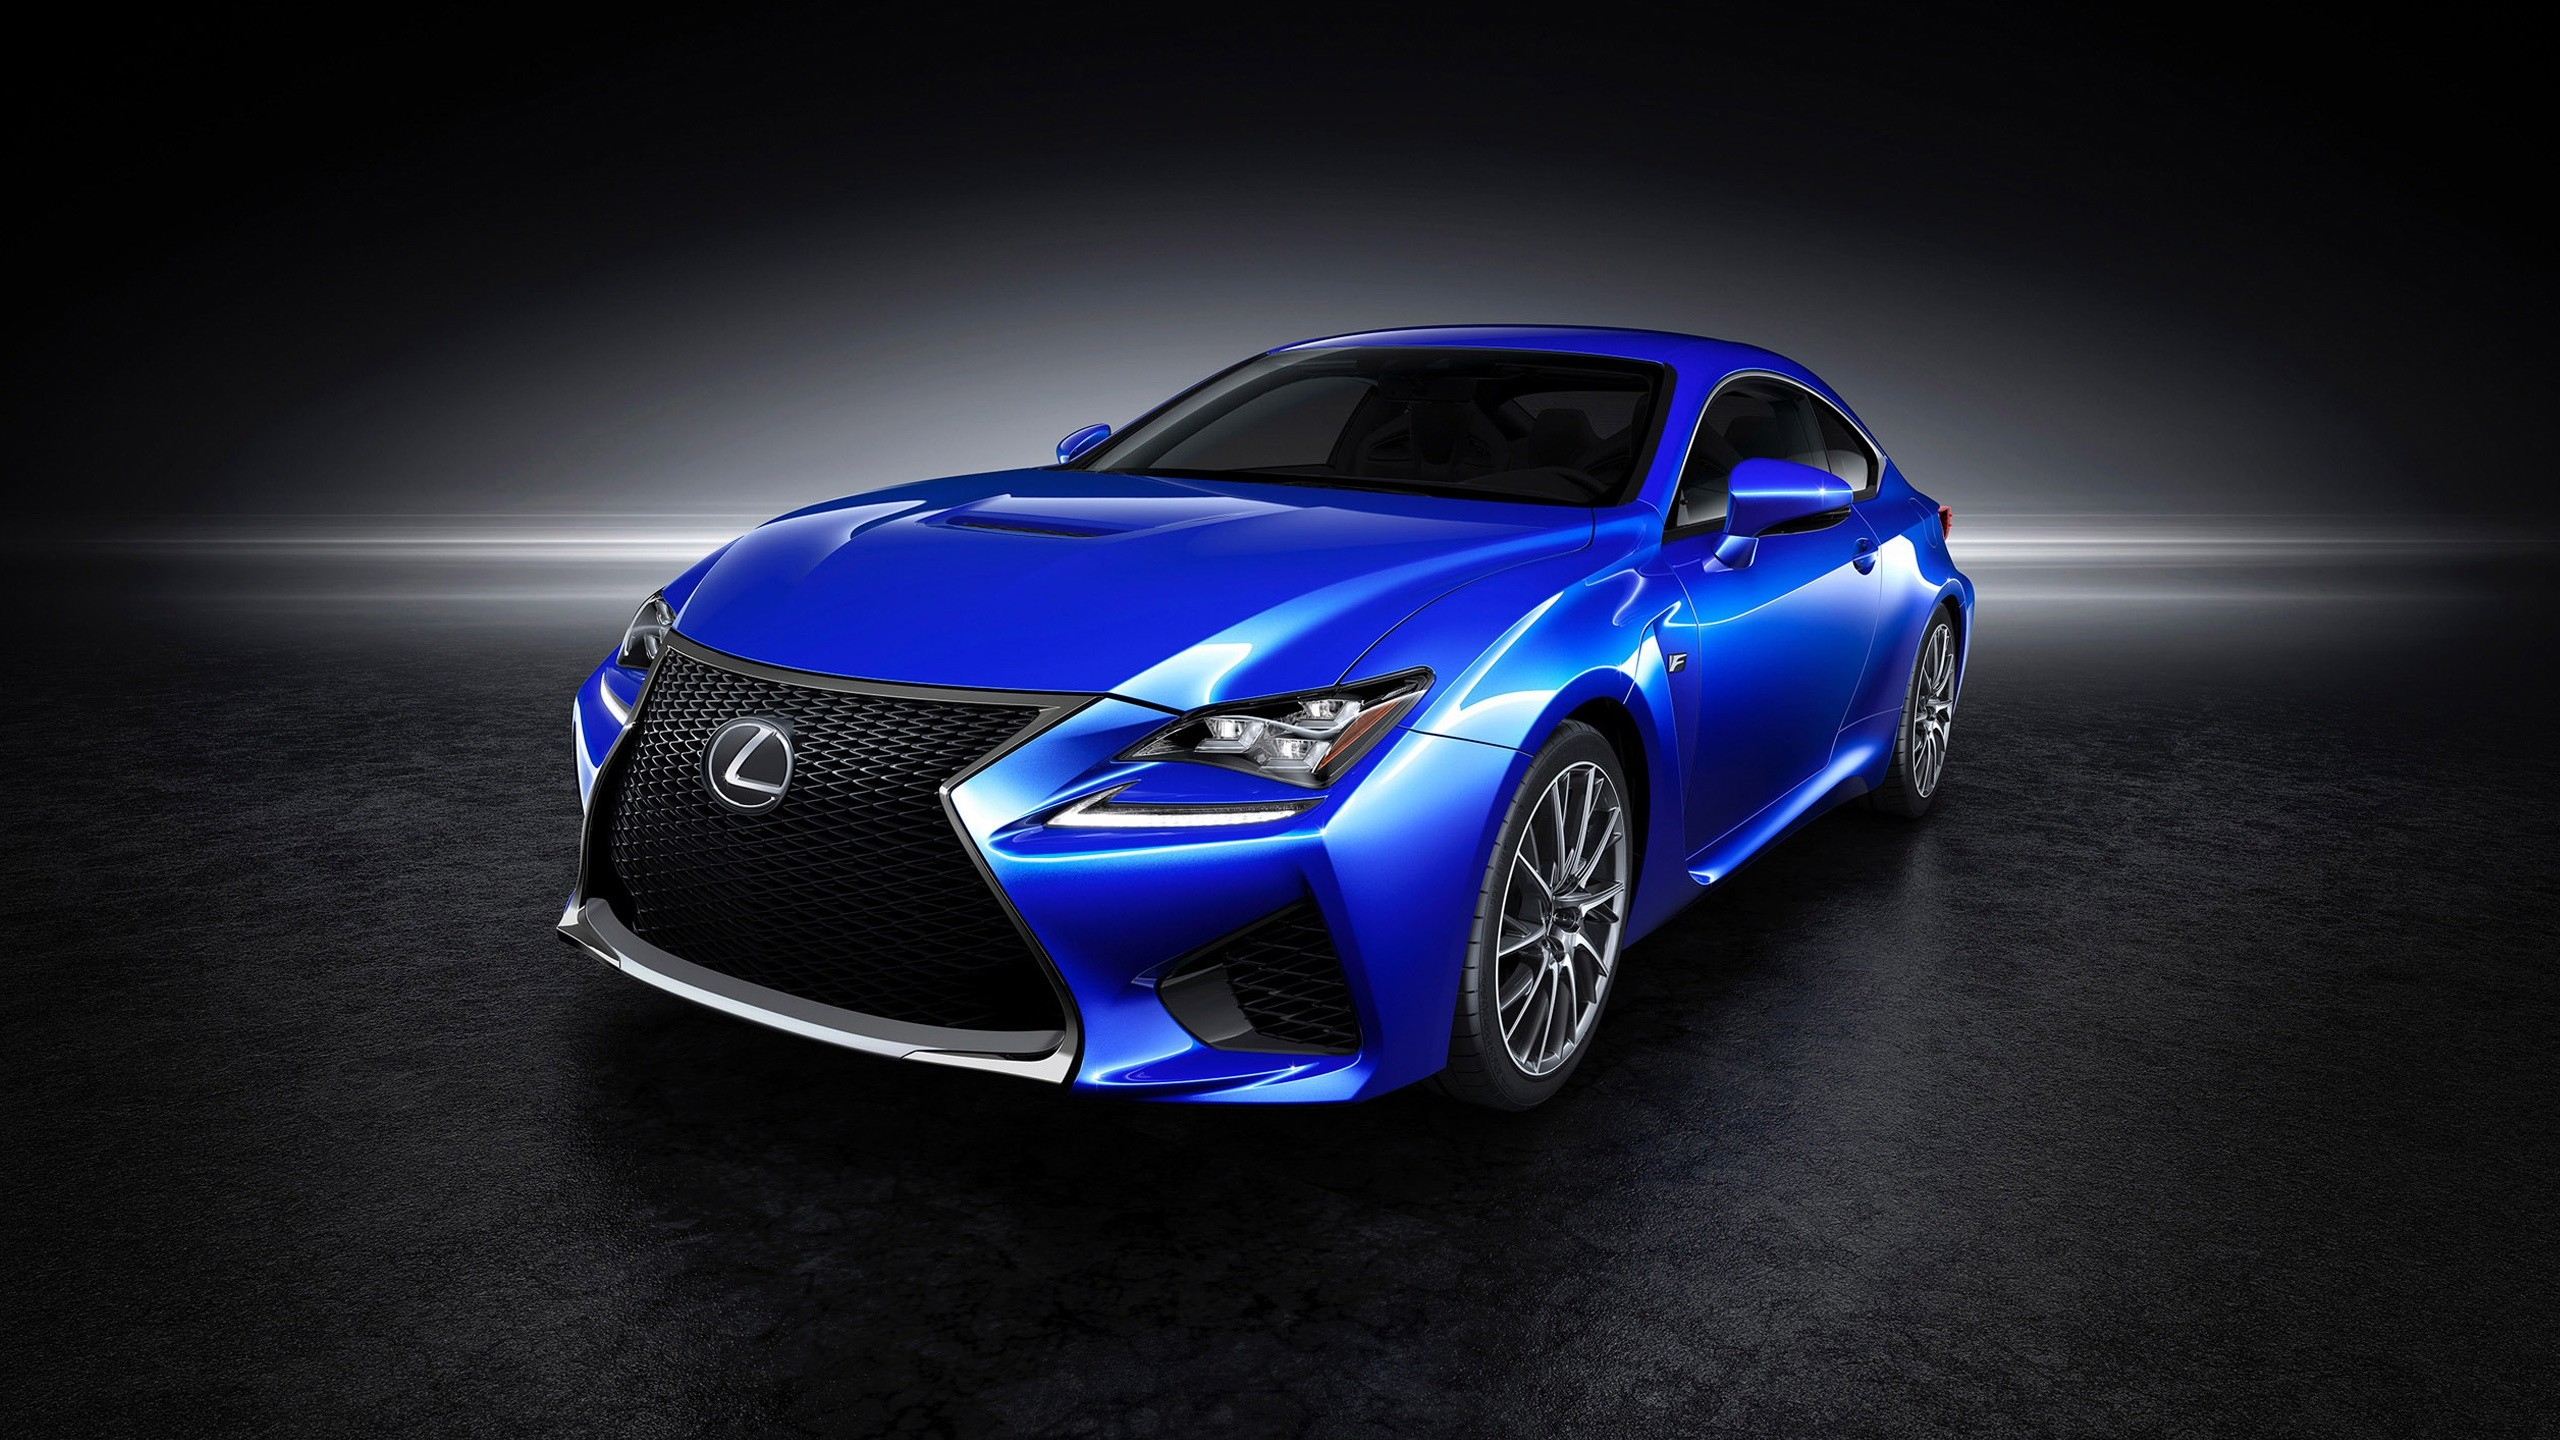 2560x1440 Leus Rc F 00, Lexus, Hd Car Images, Tuning, Lexus Gs,